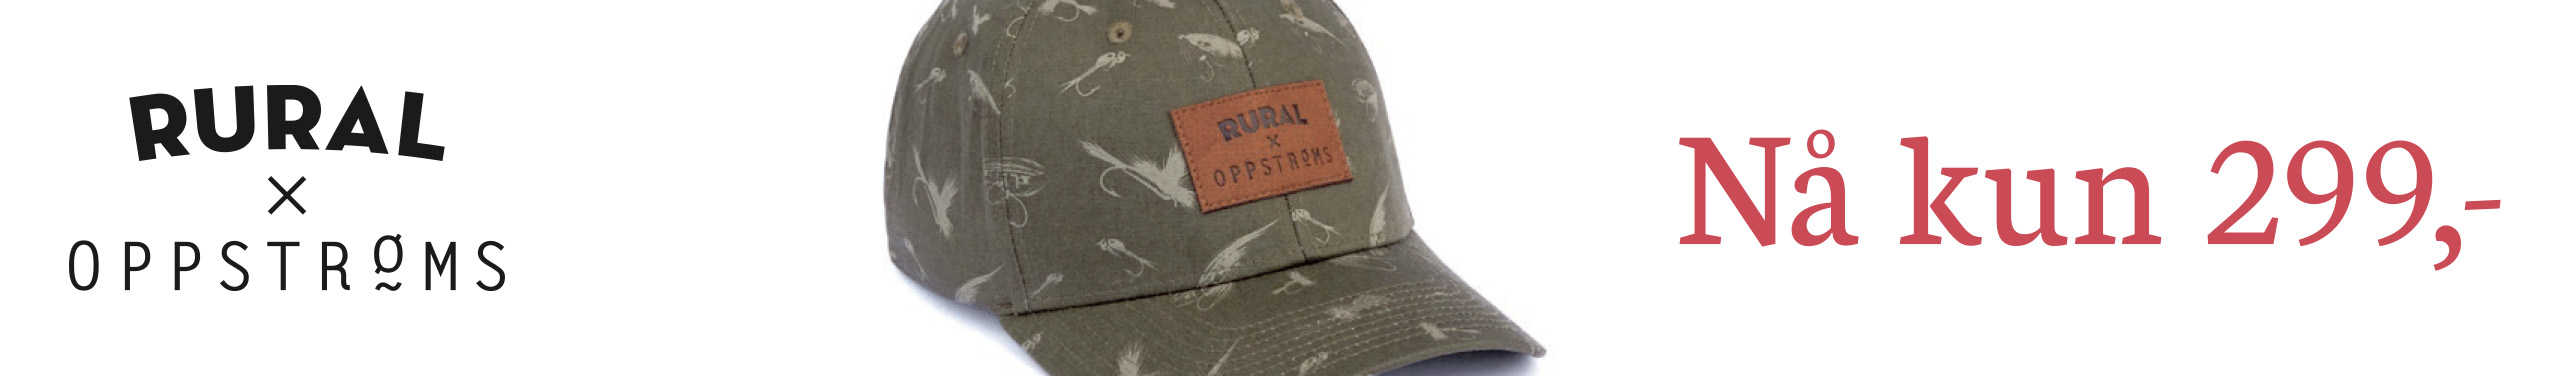 Rural x Opstrms